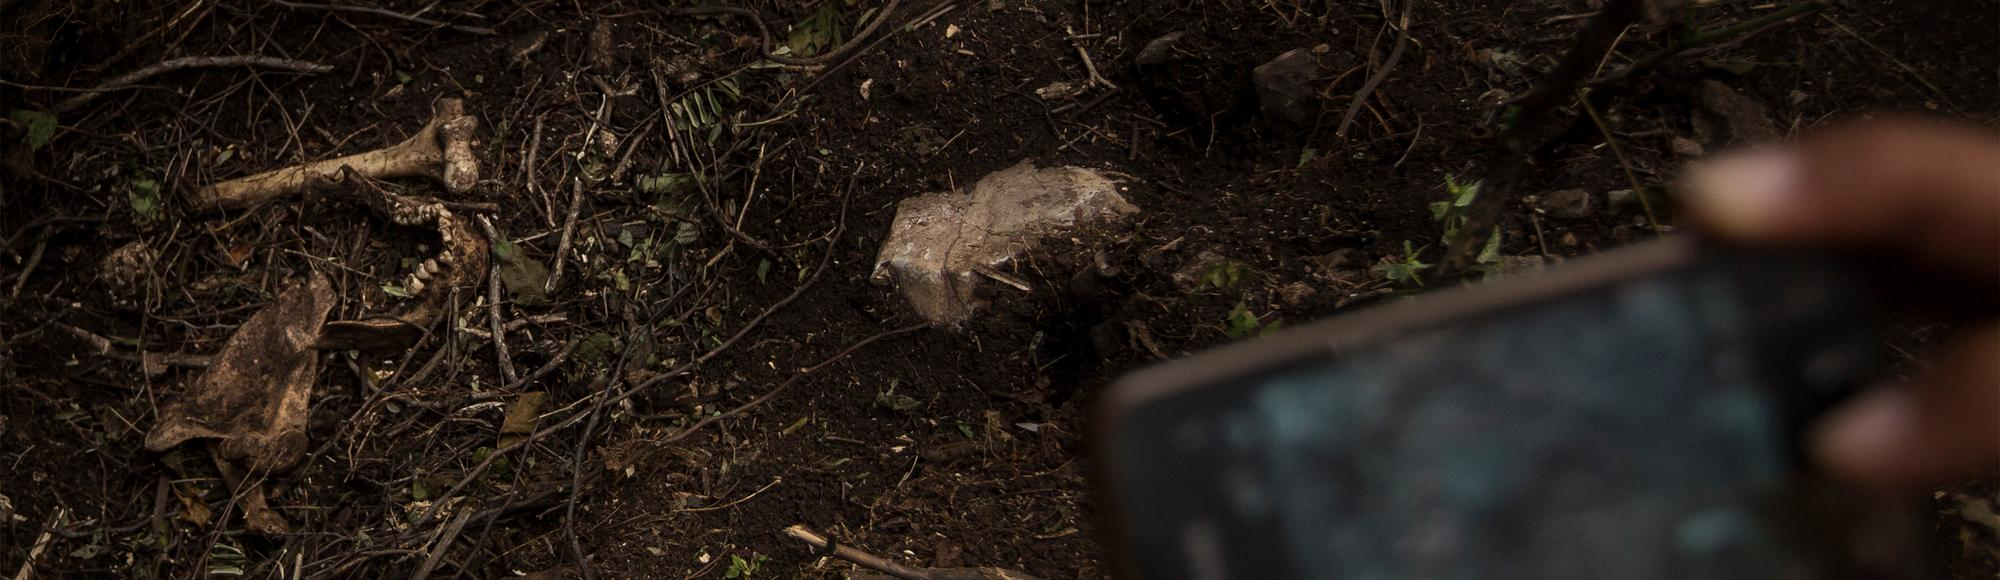 Mass Graves Dot Hillsides Around Iguala as Search for Missing Students Continues